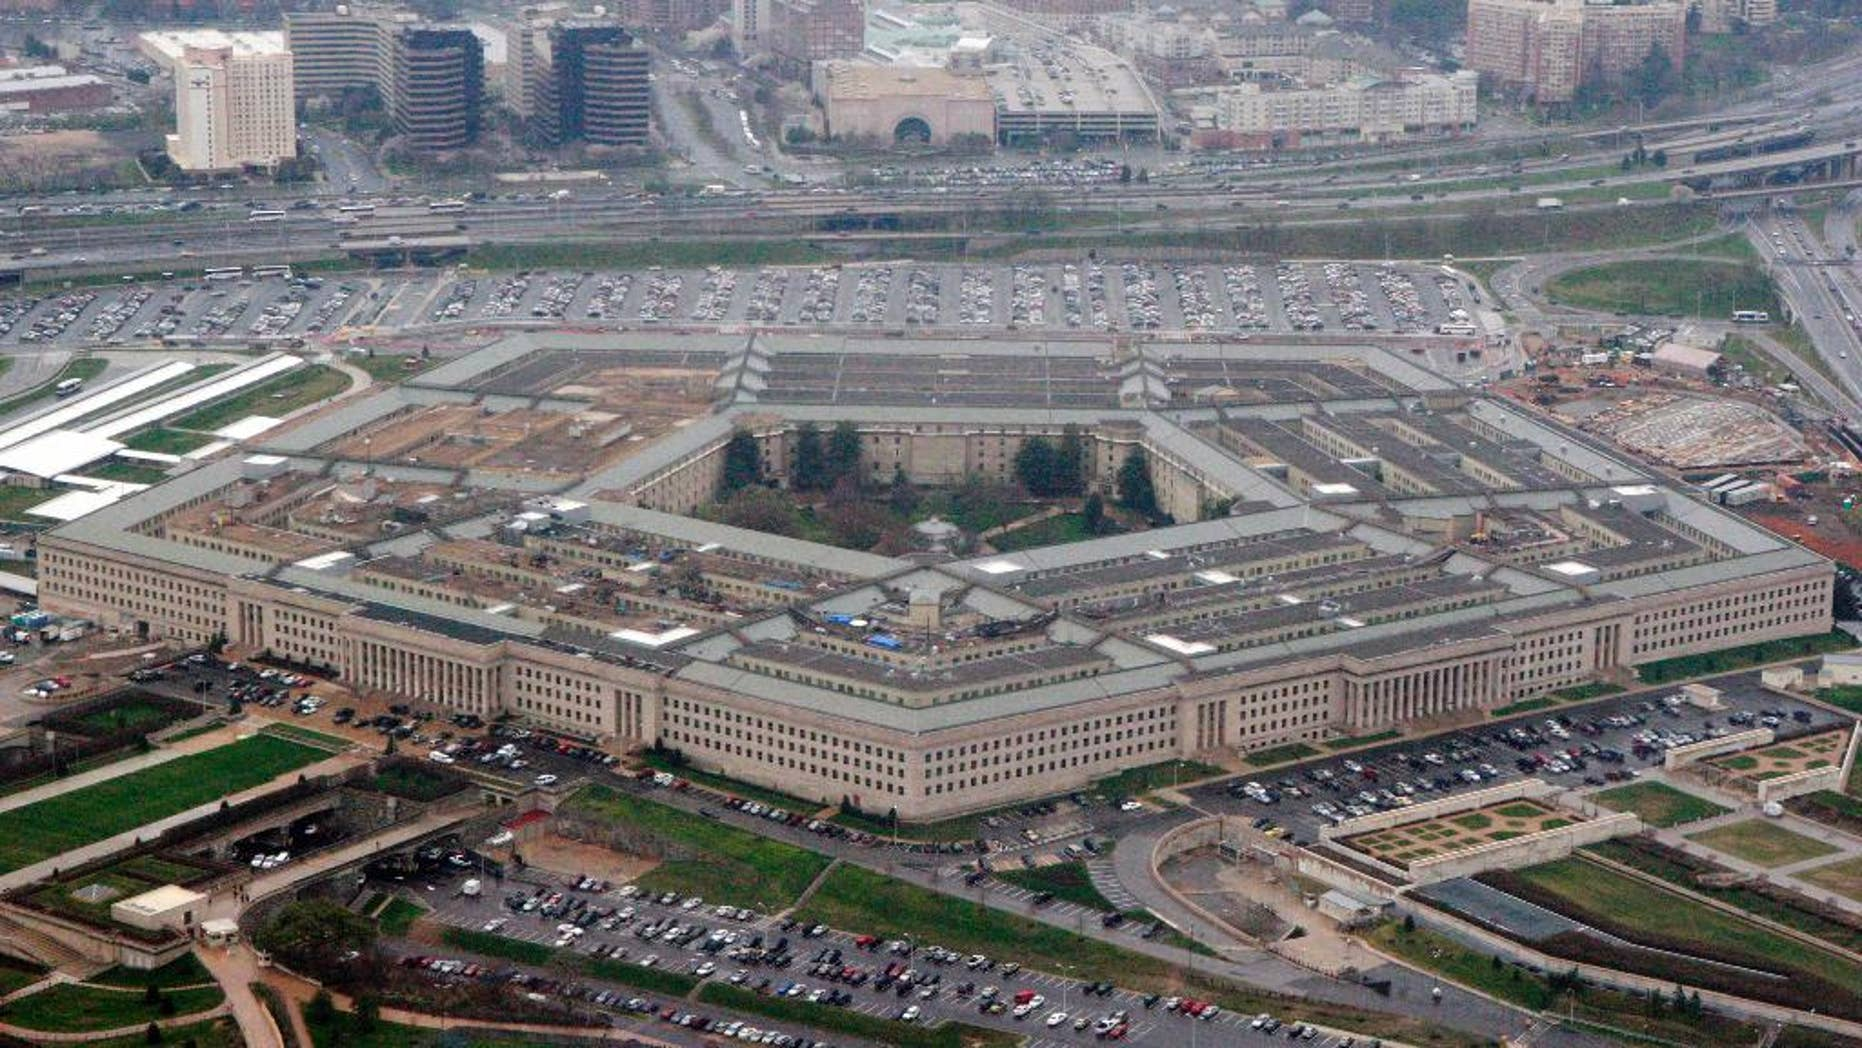 Packages with suspected ricin sent to Pentagon, Navy chiefs